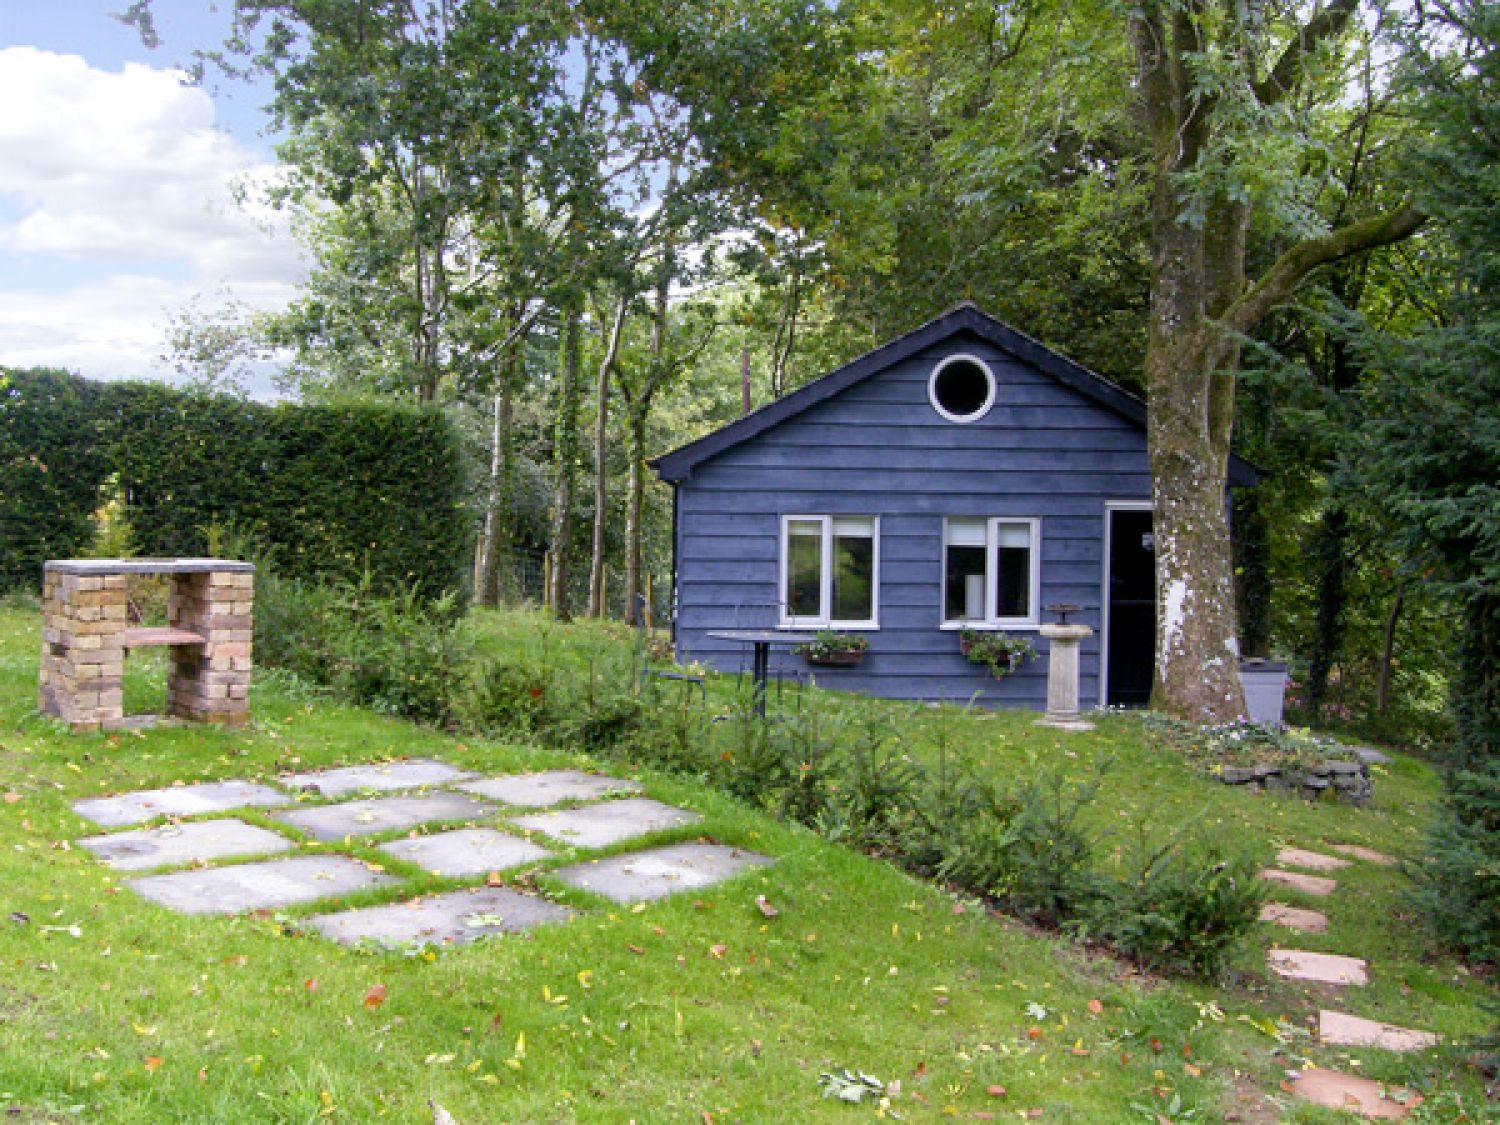 Garden Cottage Holiday Lodges in Powys